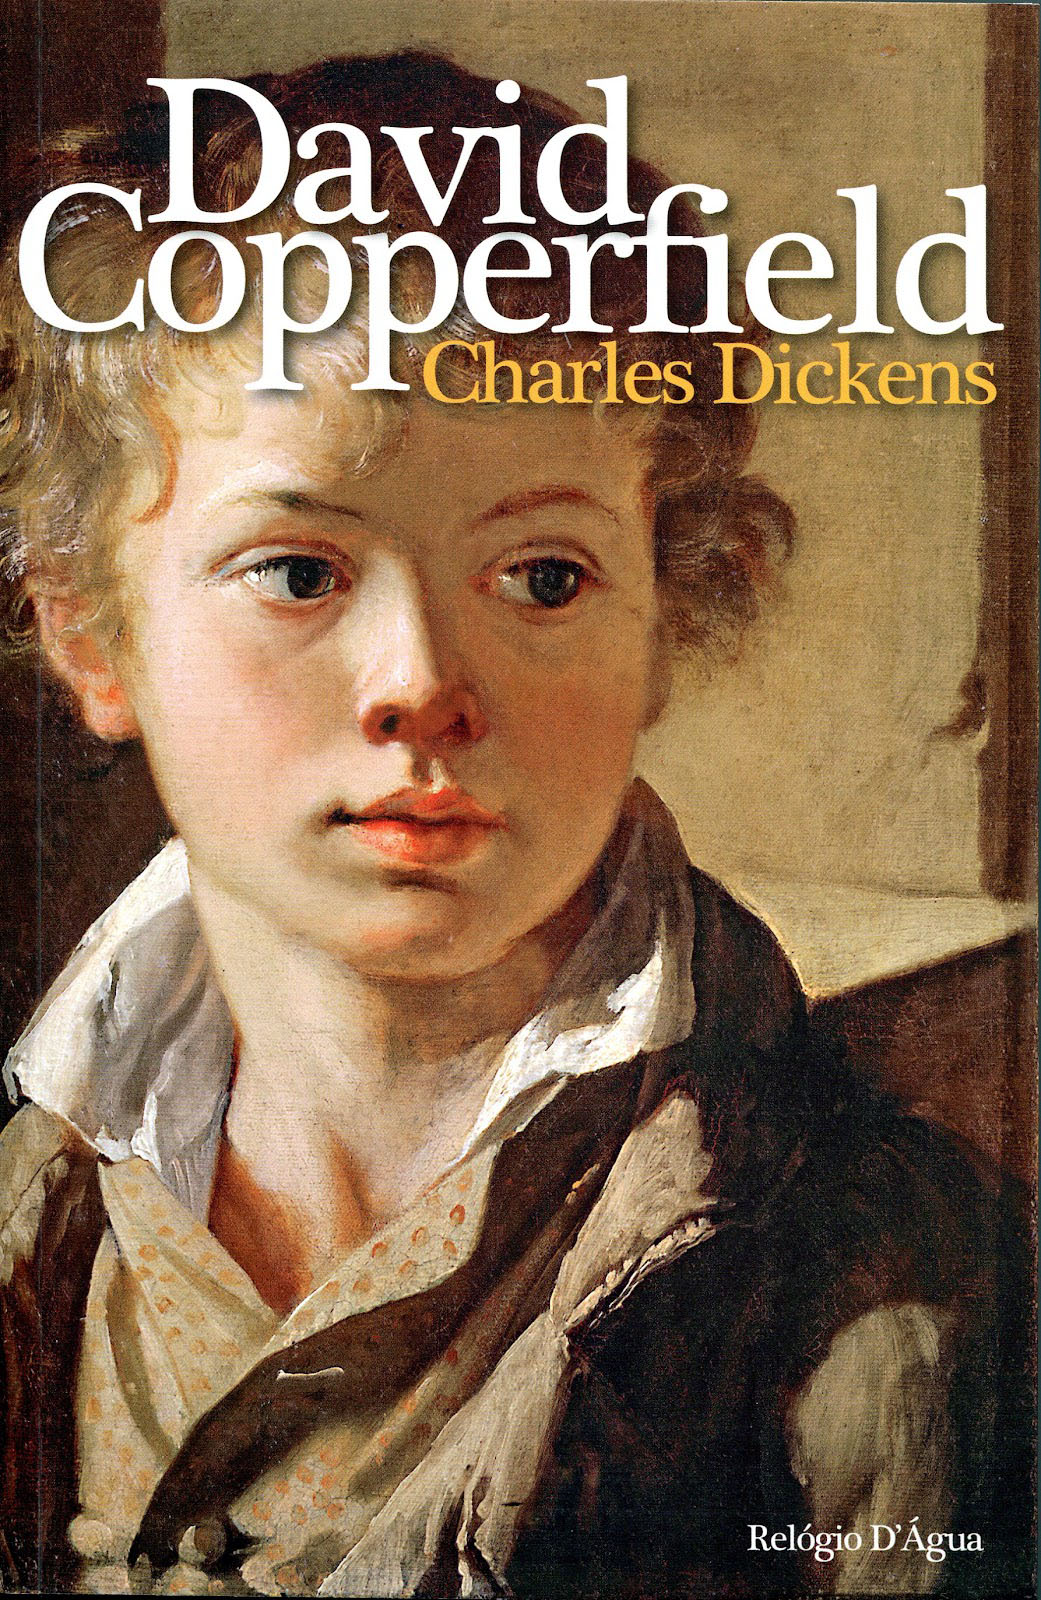 15. David Copperfield by Charles Dickens (1850)